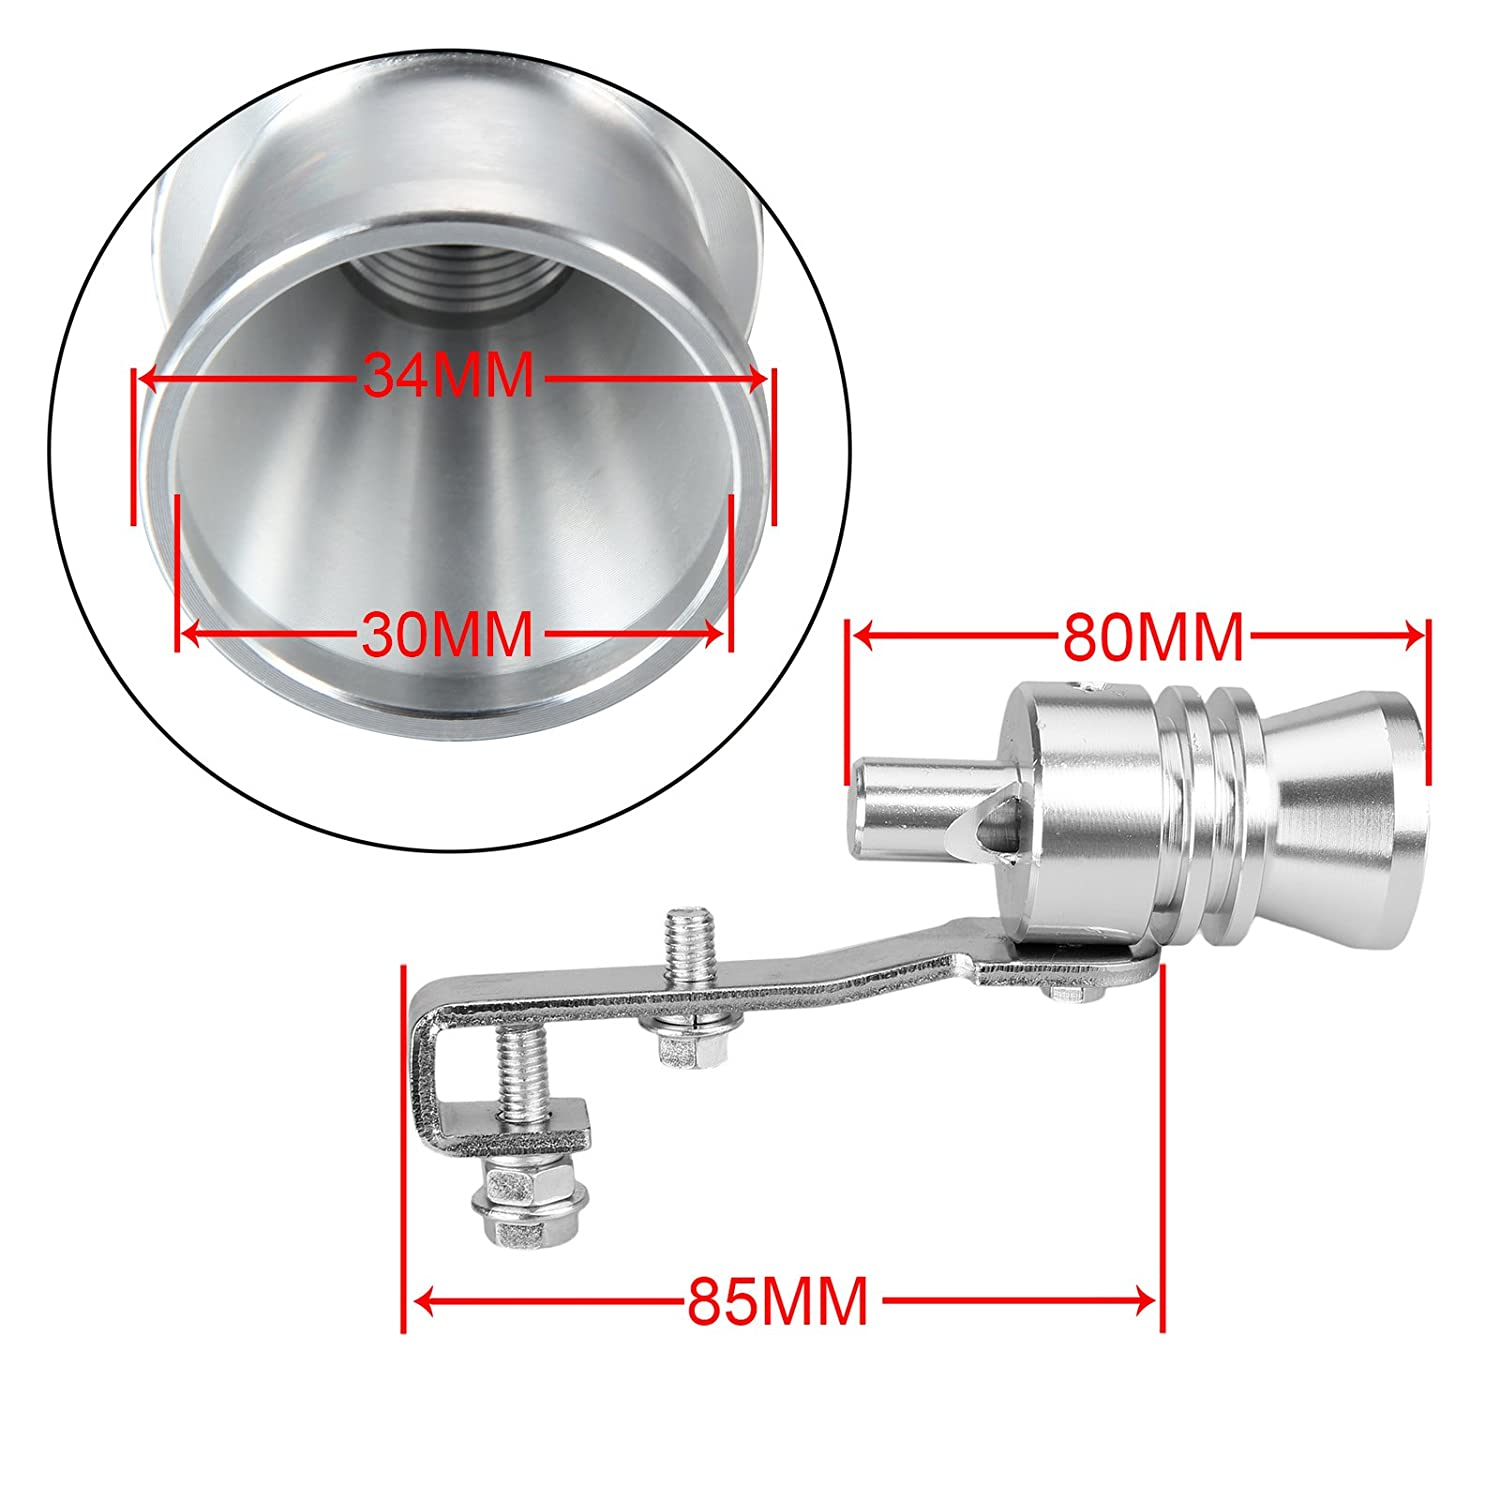 Amazon.com: Dromedary Universal Color Chrome Size XL Turbo Sound Noise Exhaust Muffler Pipe Whistle/Fake Blow off valve BOV Simulator Whistler: Automotive